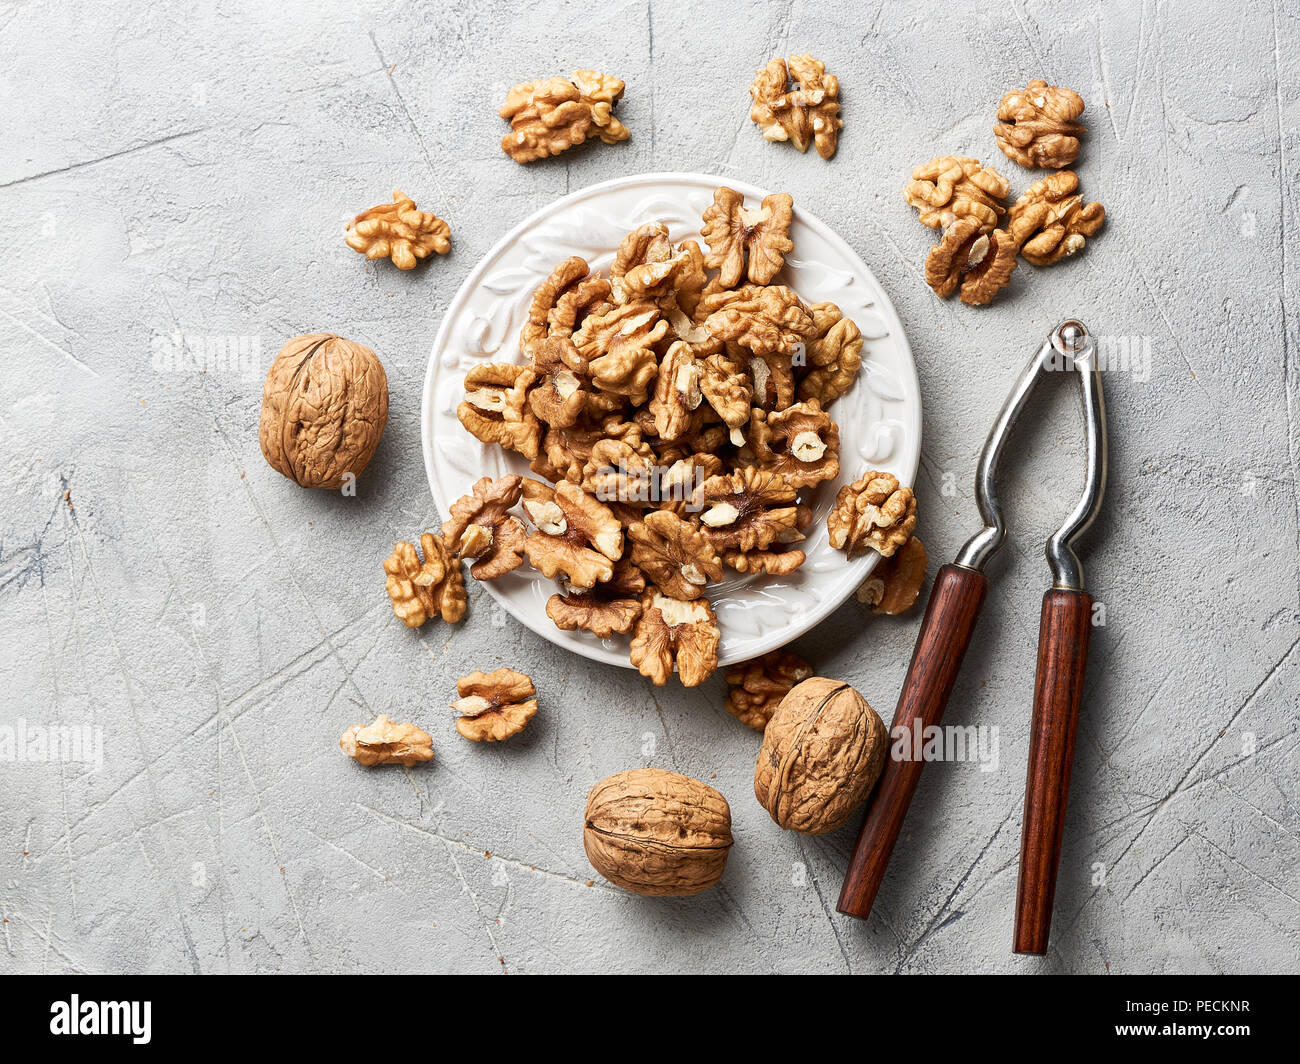 Walnut kernels on white plate over gray background with nutcracker. - Stock Image